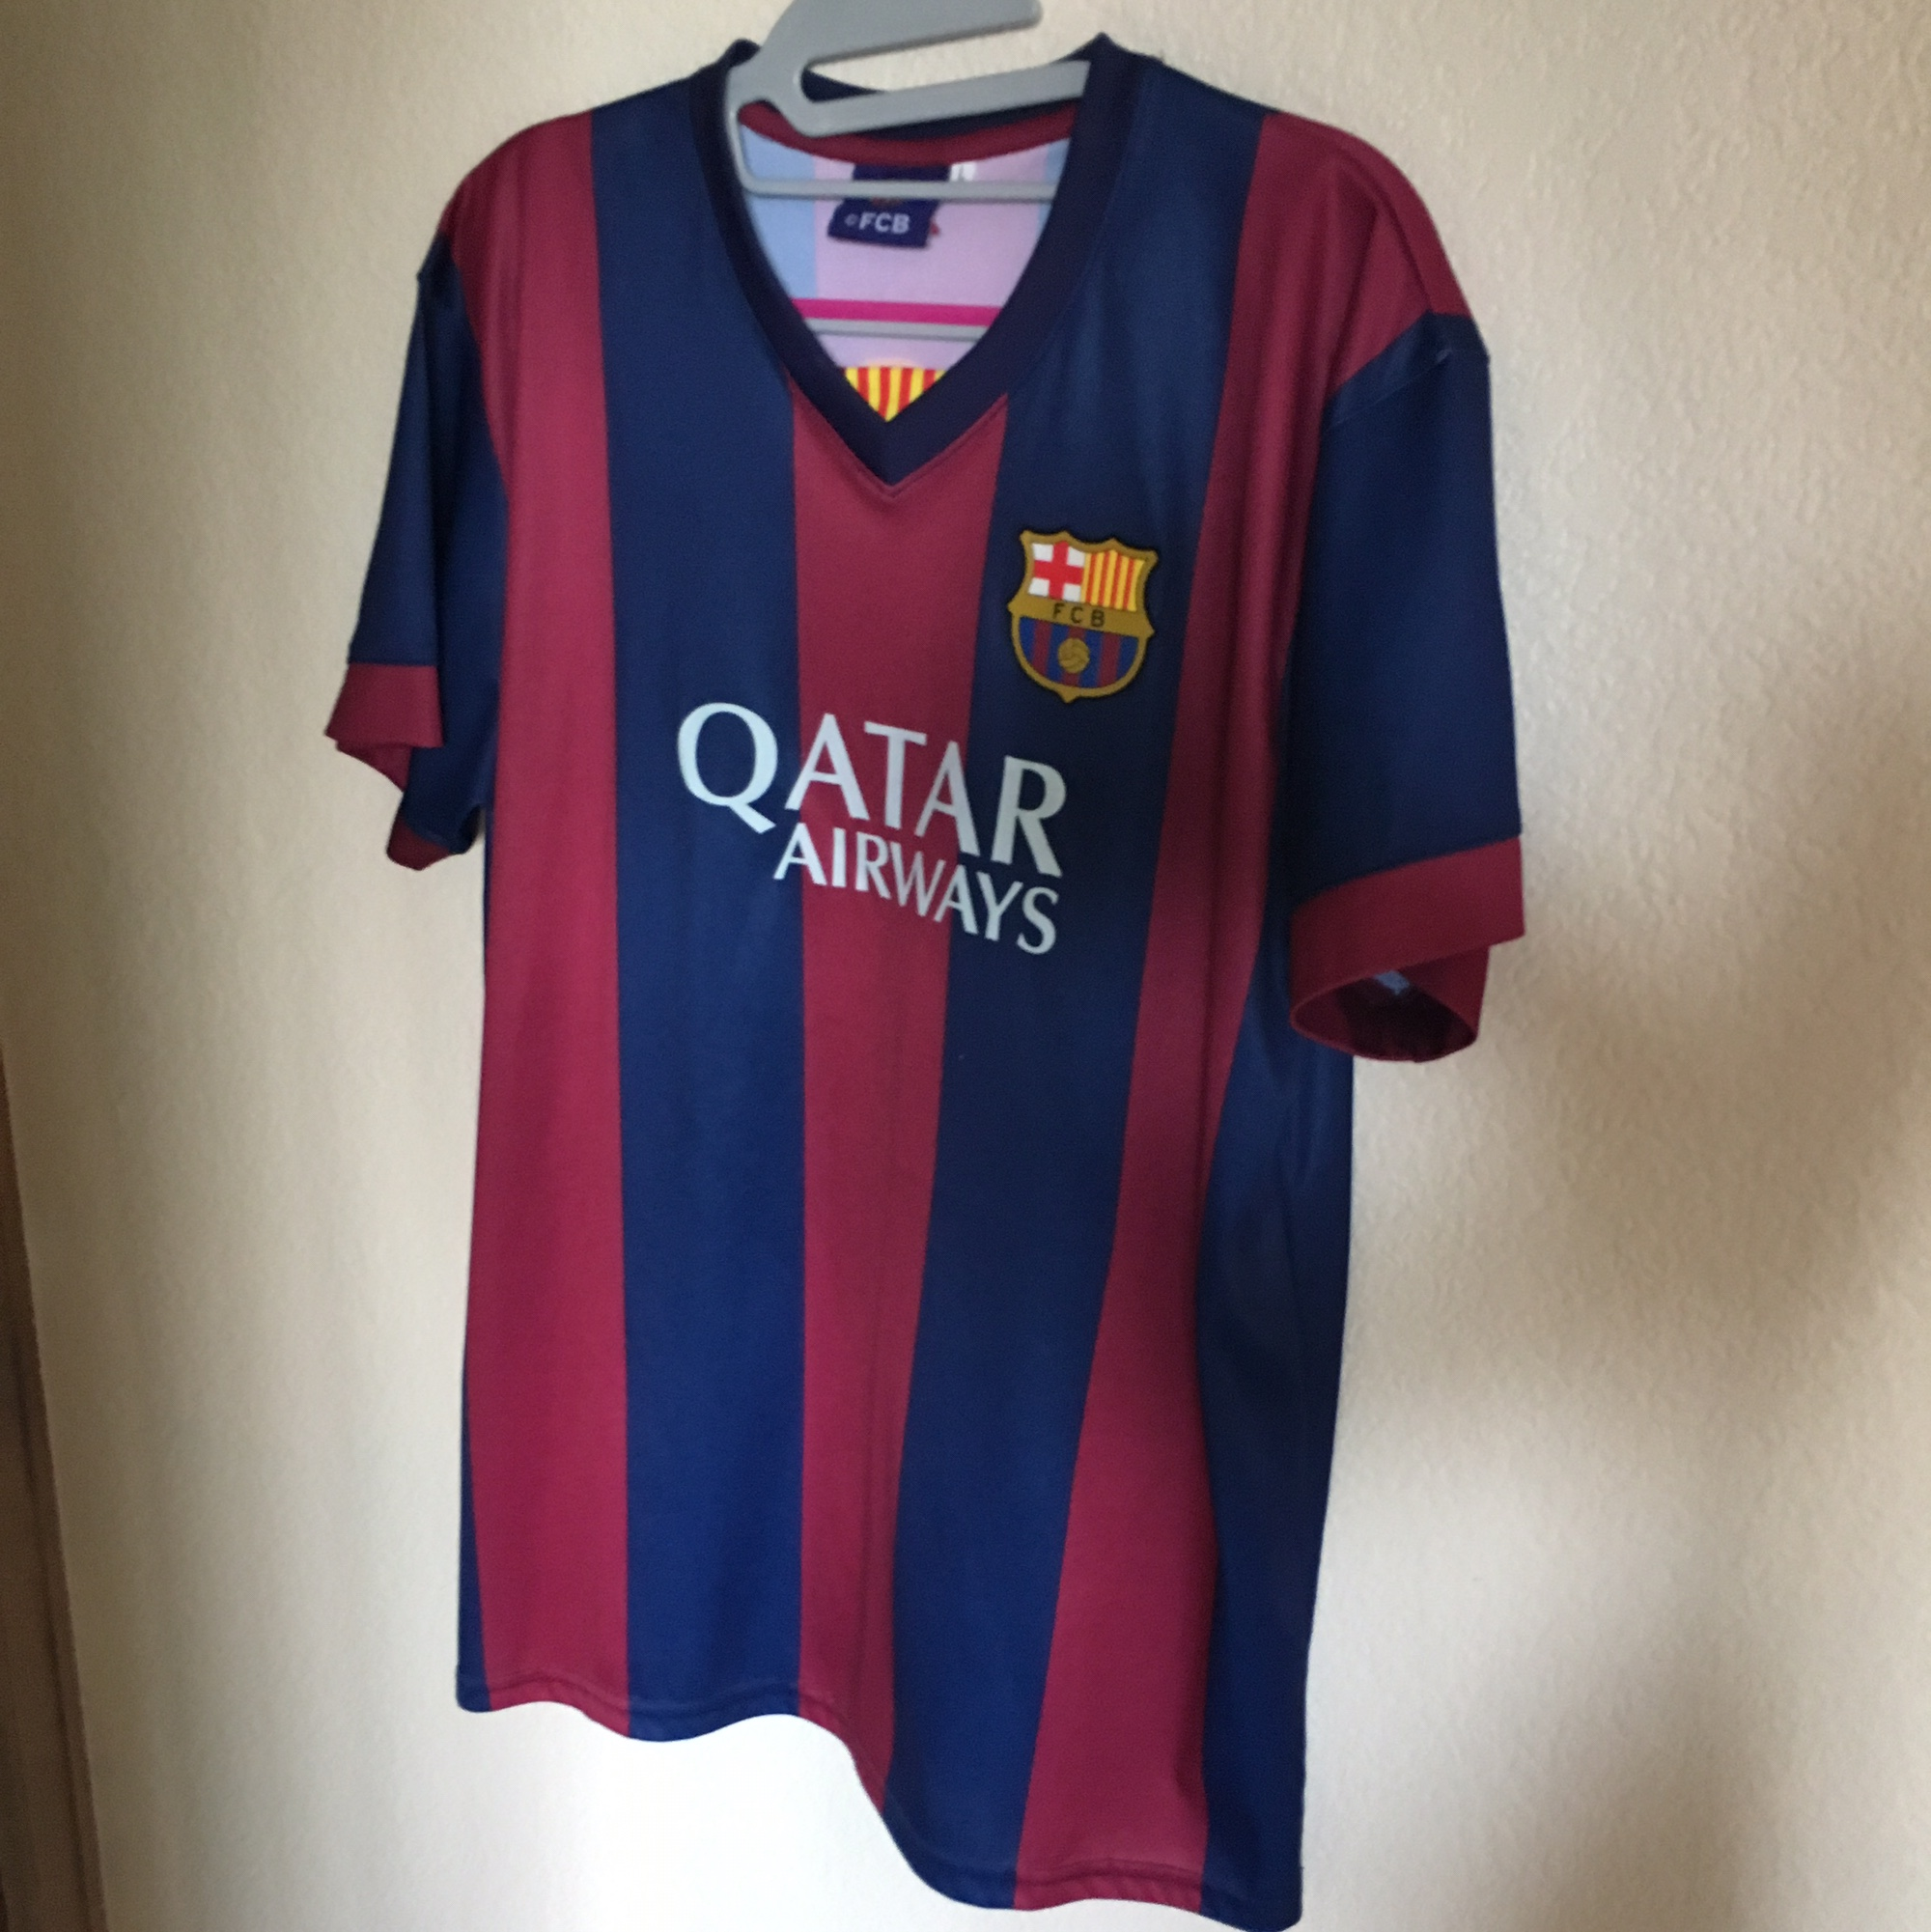 huge discount f5f7c c77cc FC Barcelona Messi soccer jersey. Brand is FCB in a... - Depop